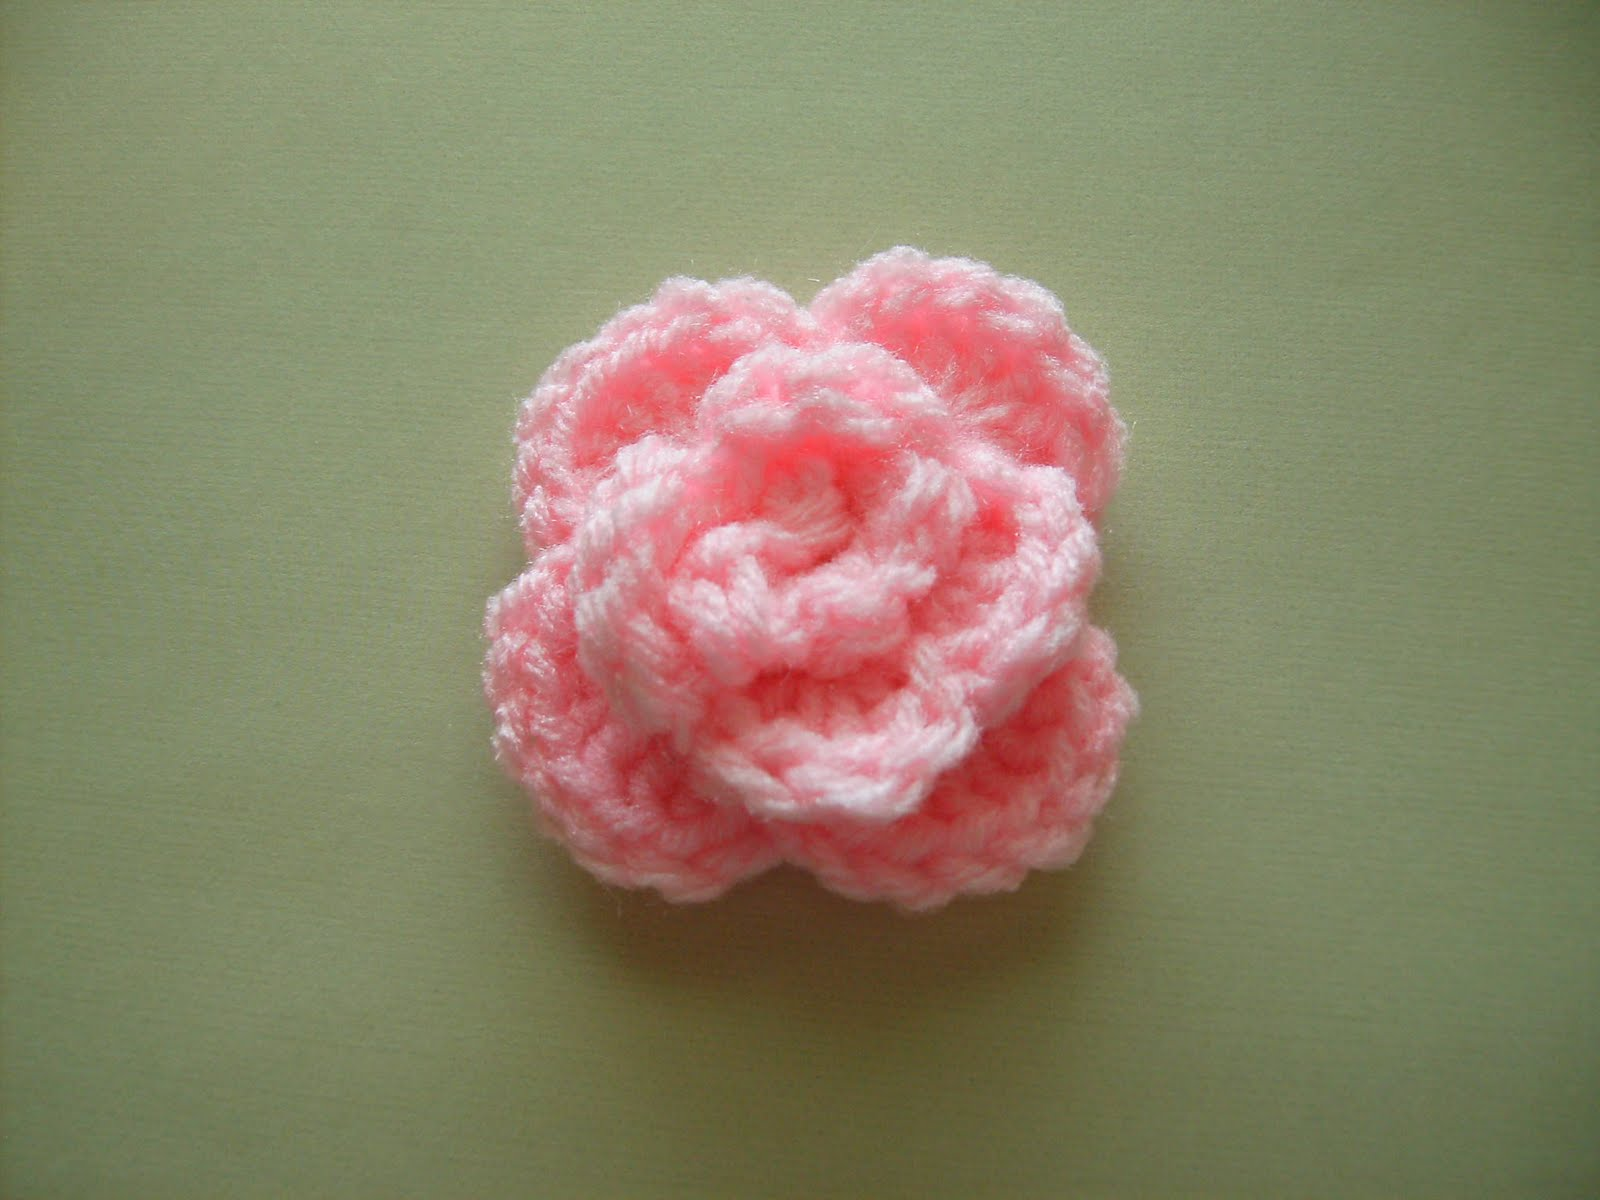 Crochet Patterns Roses Free : Scrap Yarn Crochet: Free Rose Crochet Pattern